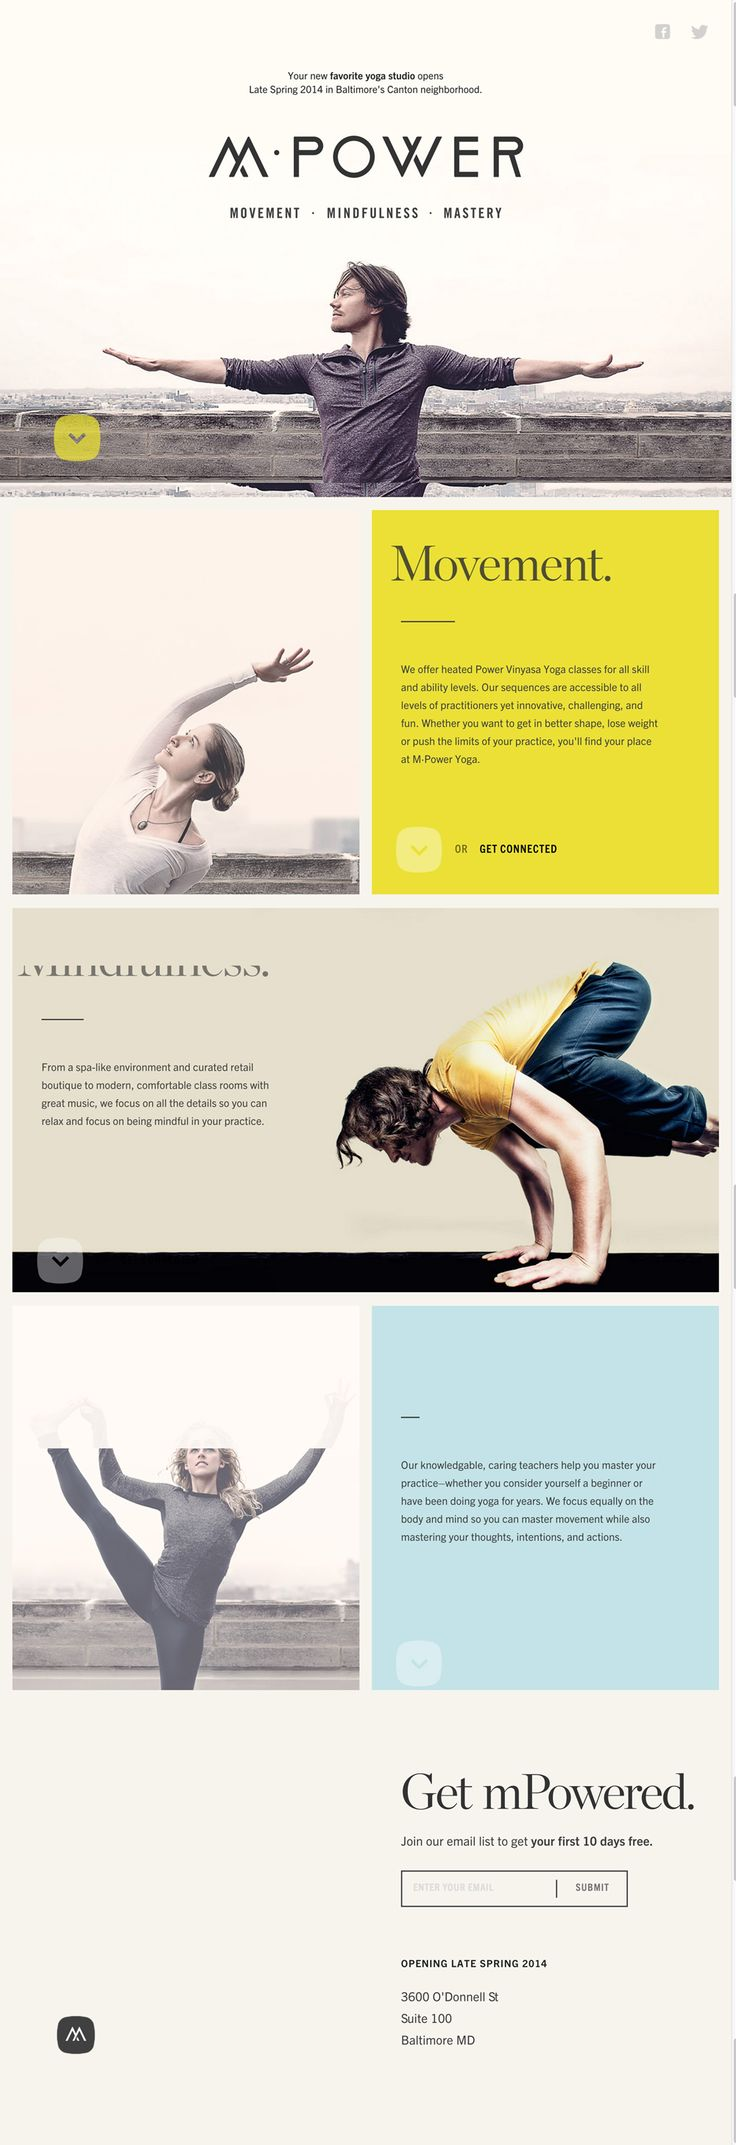 Mpower Yoga Studio Website pastel color, beige, HTML5 CCS3, animate, single page   - Clear layout with good balance of images and text.